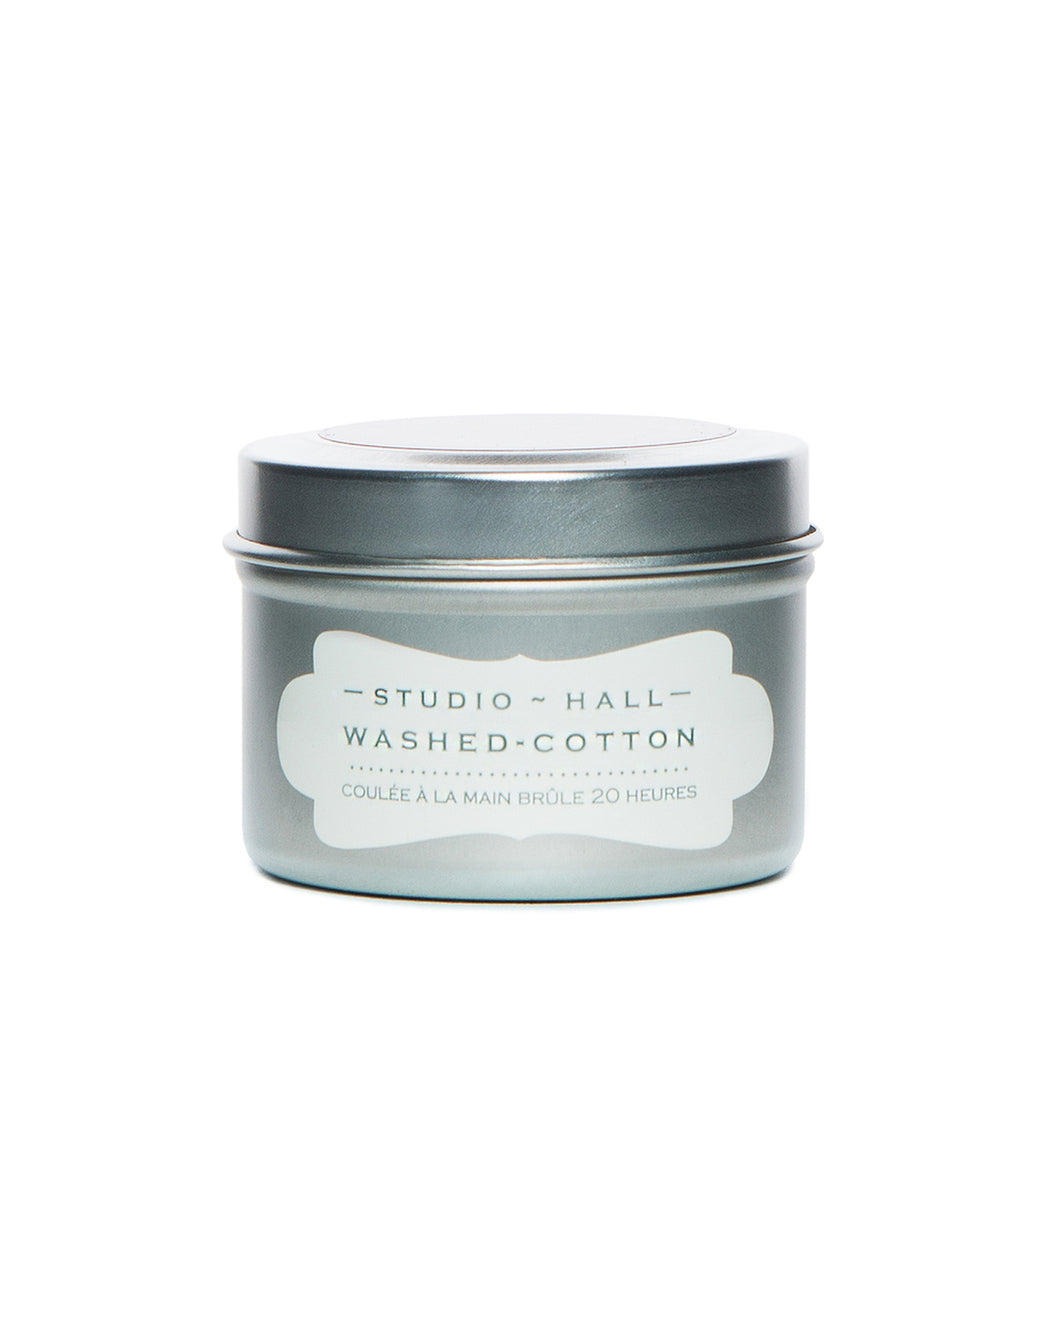 Washed Cotton 2oz Travel Candle